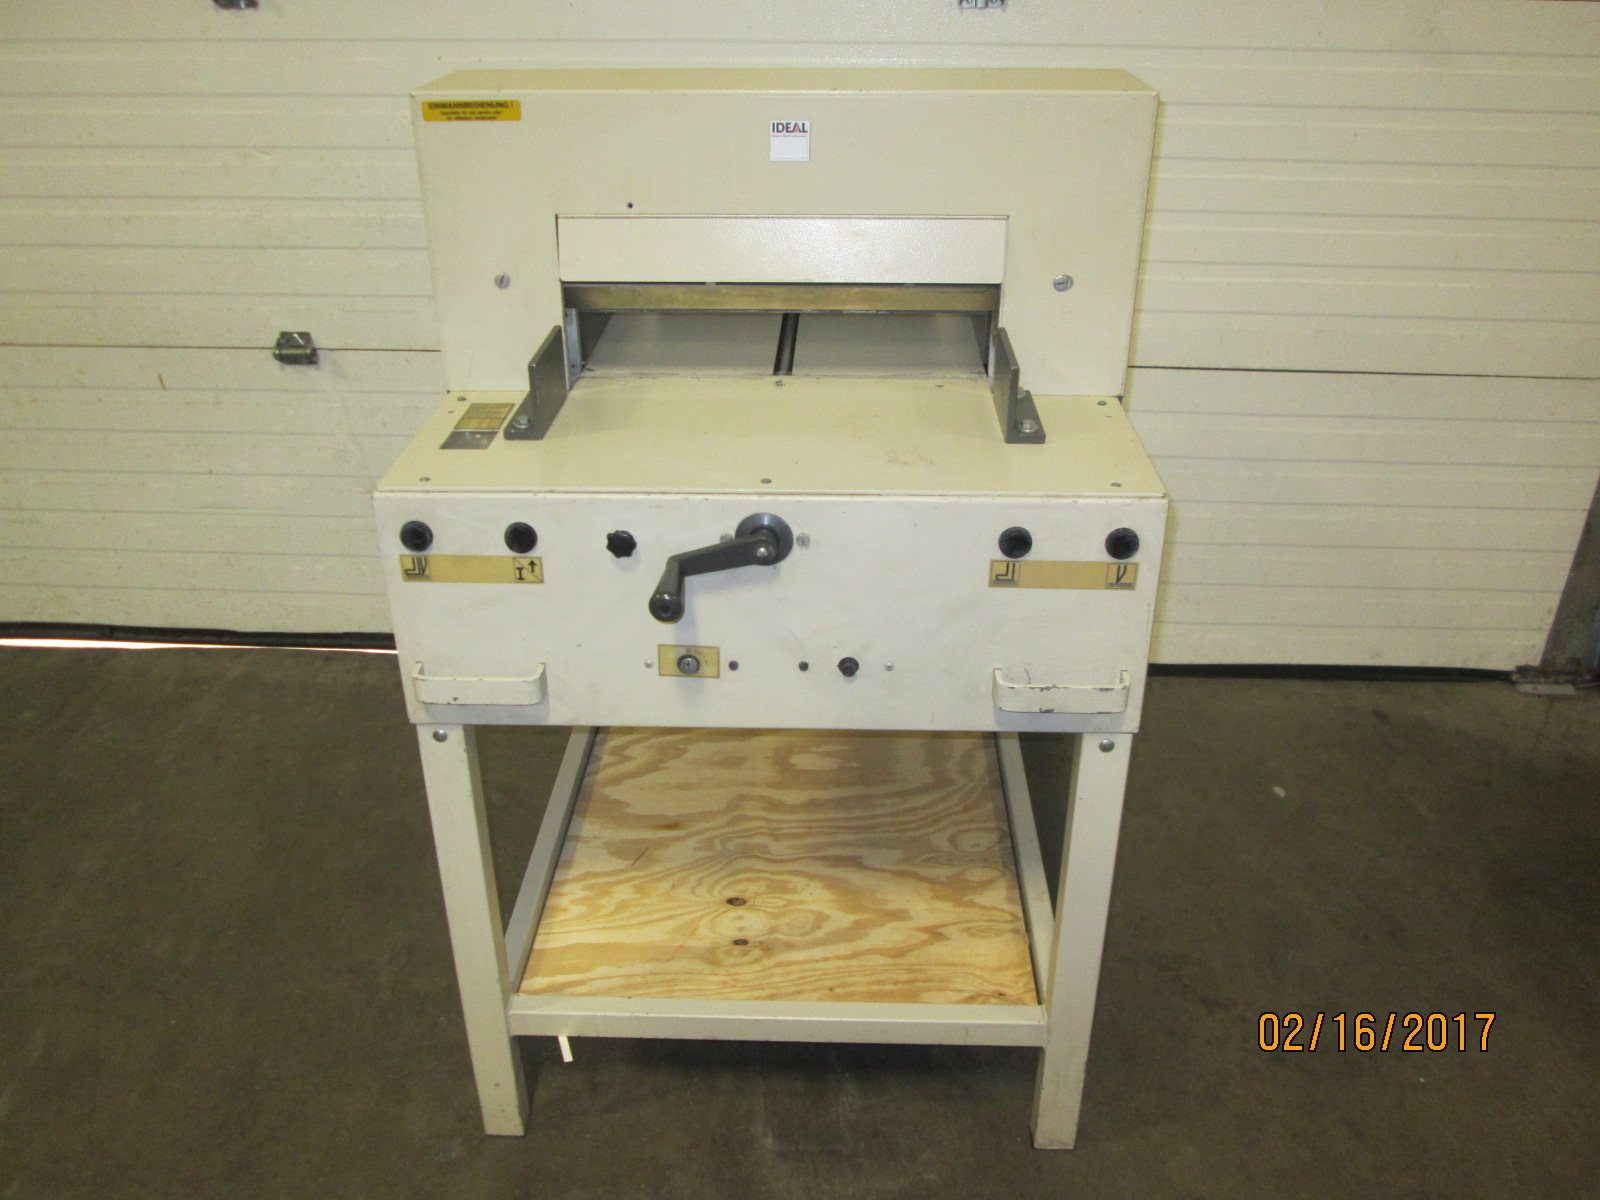 TRIUMP IDEAL CUTTER,XXX, SN# XXXXX, YEAR: XXXX 84